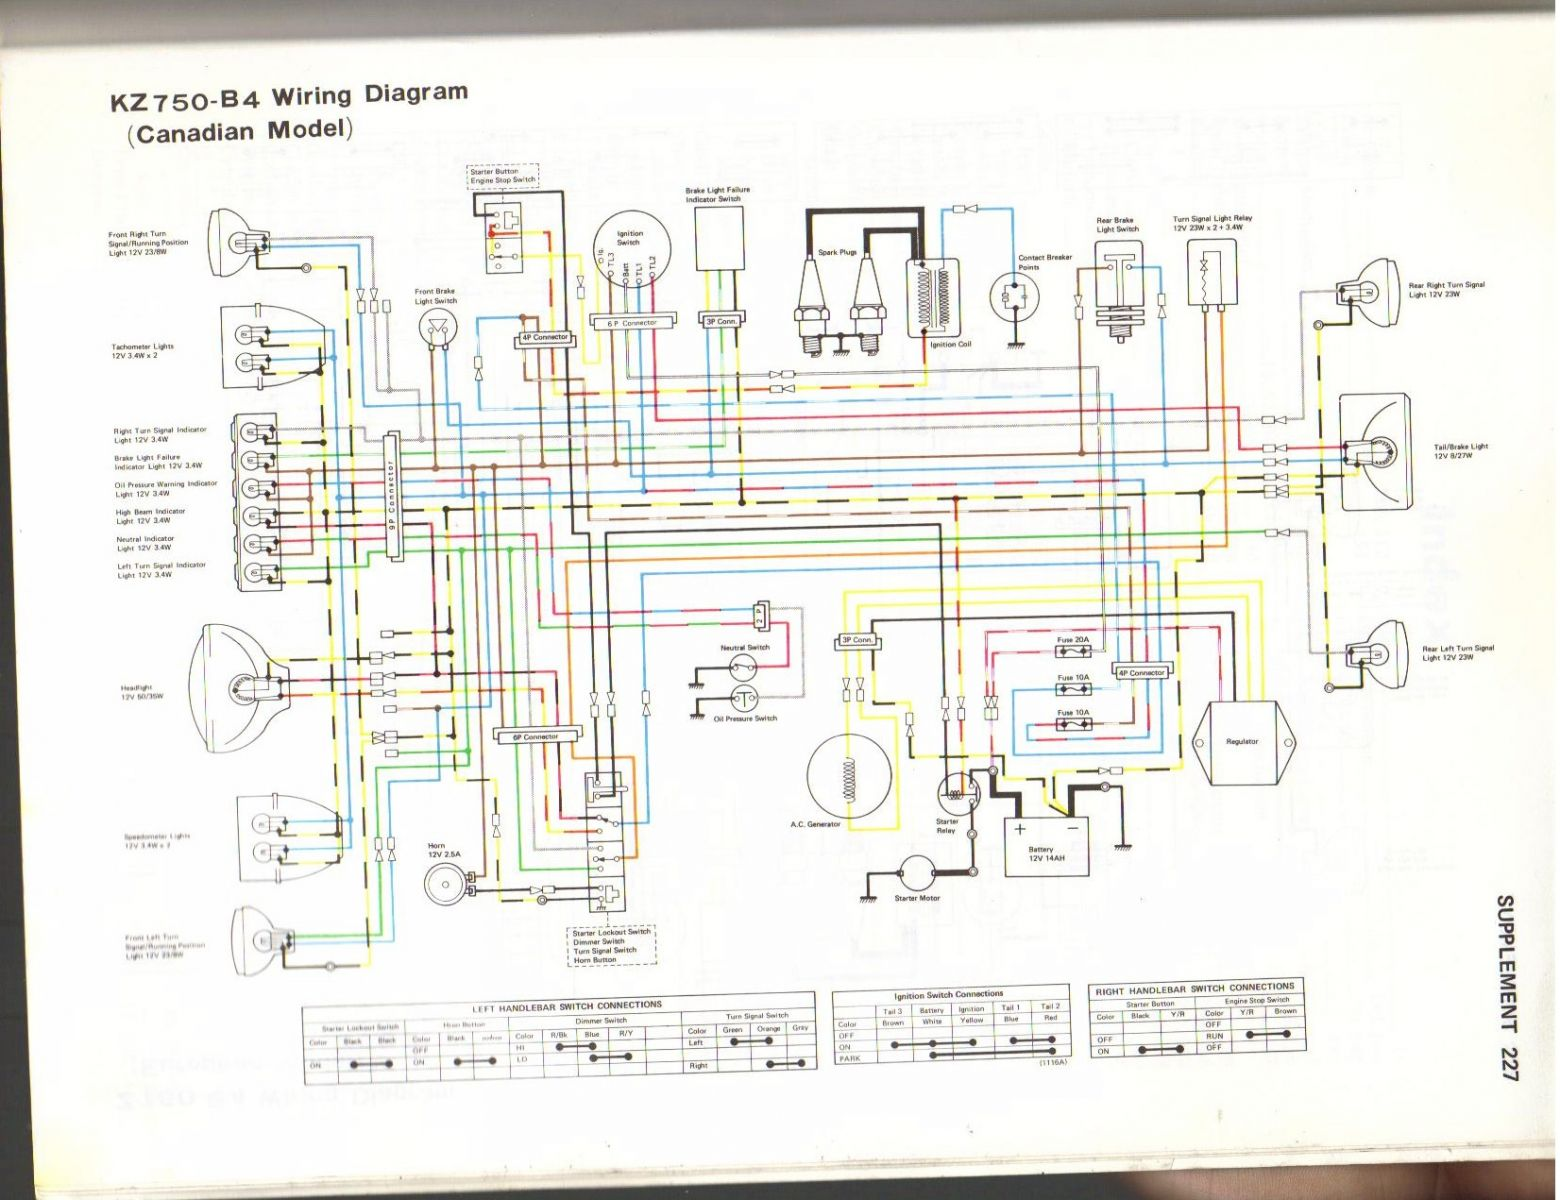 1977 kawasaki kz1000 wiring diagram maintained emergency lighting 81 kz440 z1000 elsavadorla